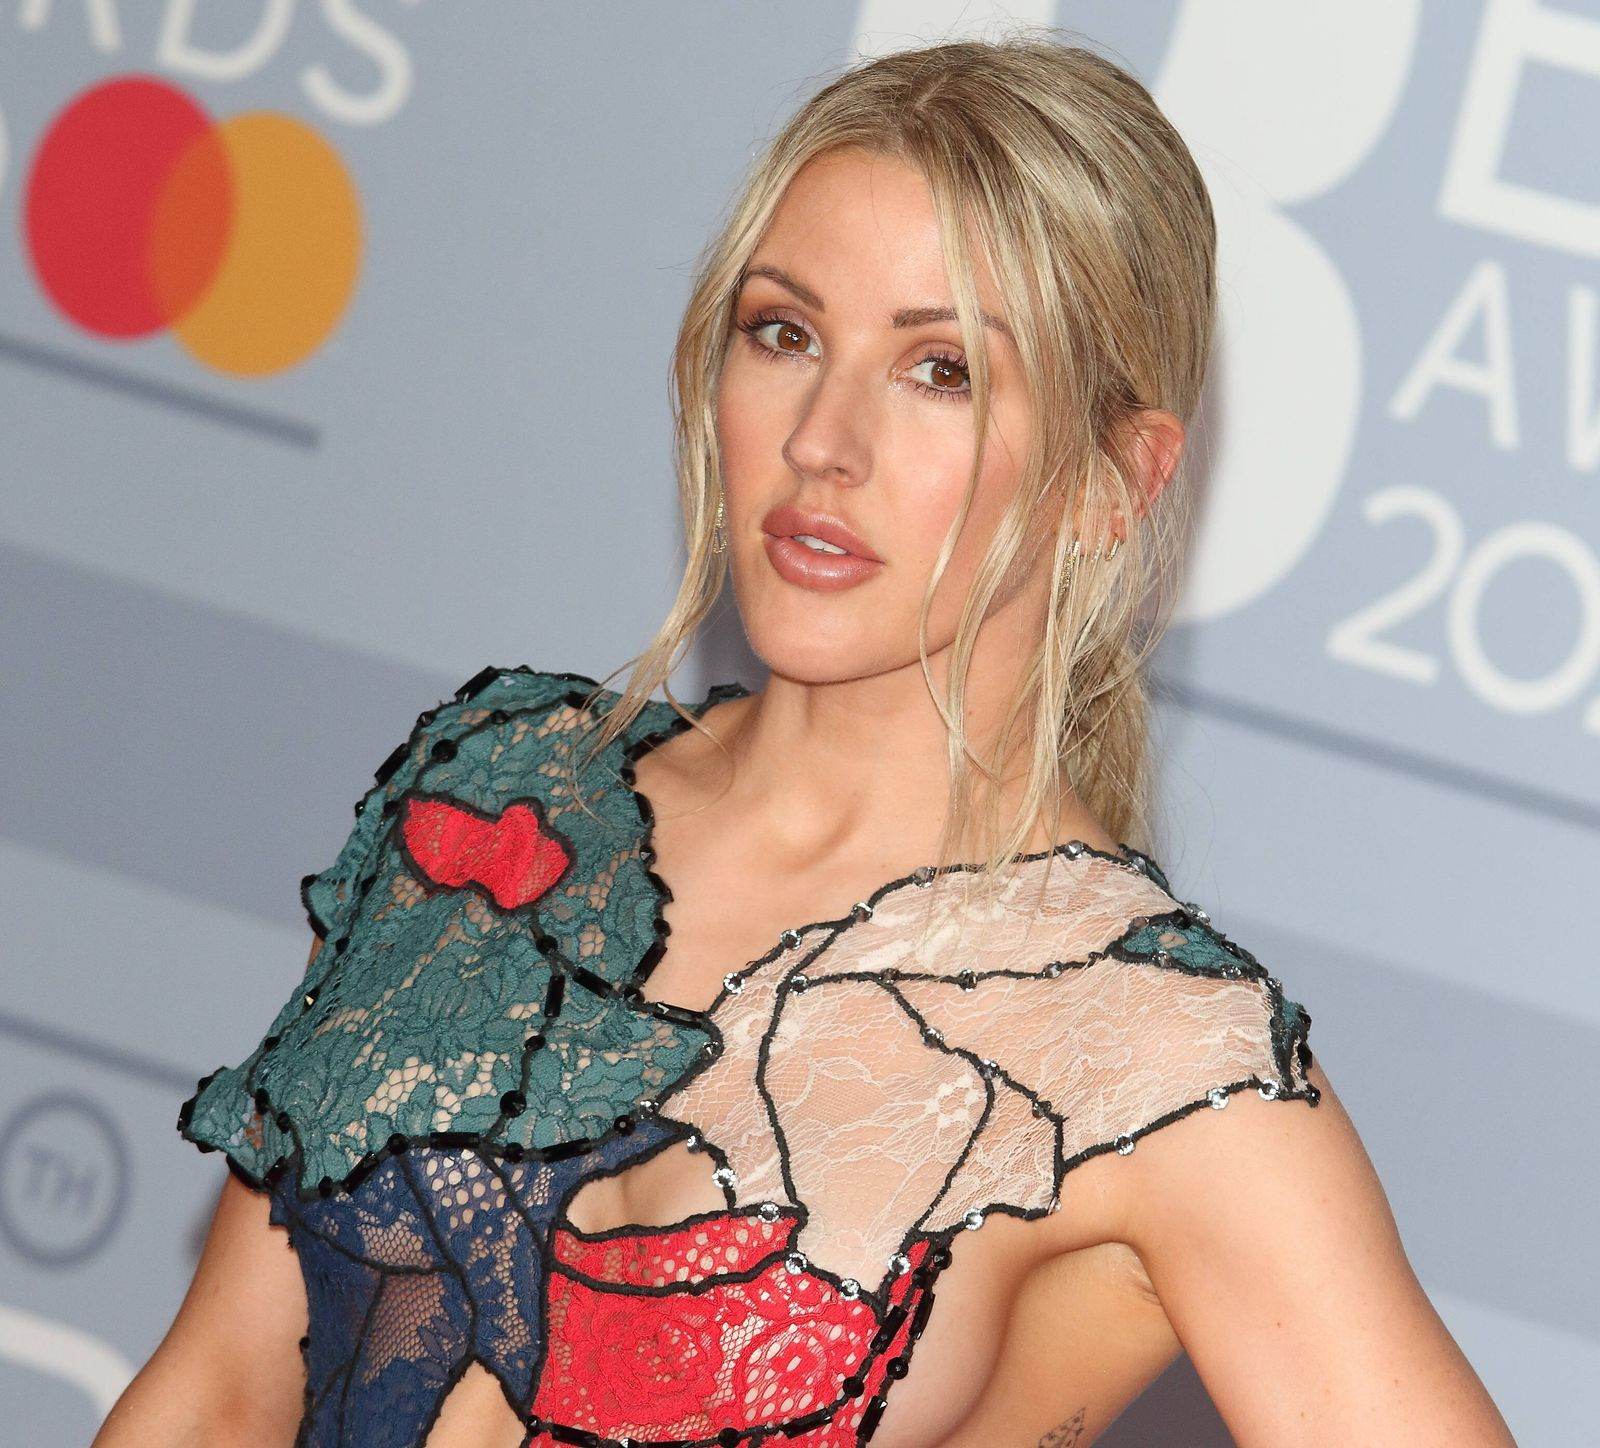 February 18, 2020, London, United Kingdom: Ellie Goulding attends the 40th Brit Awards Red Carpet arrivals at The O2 Are